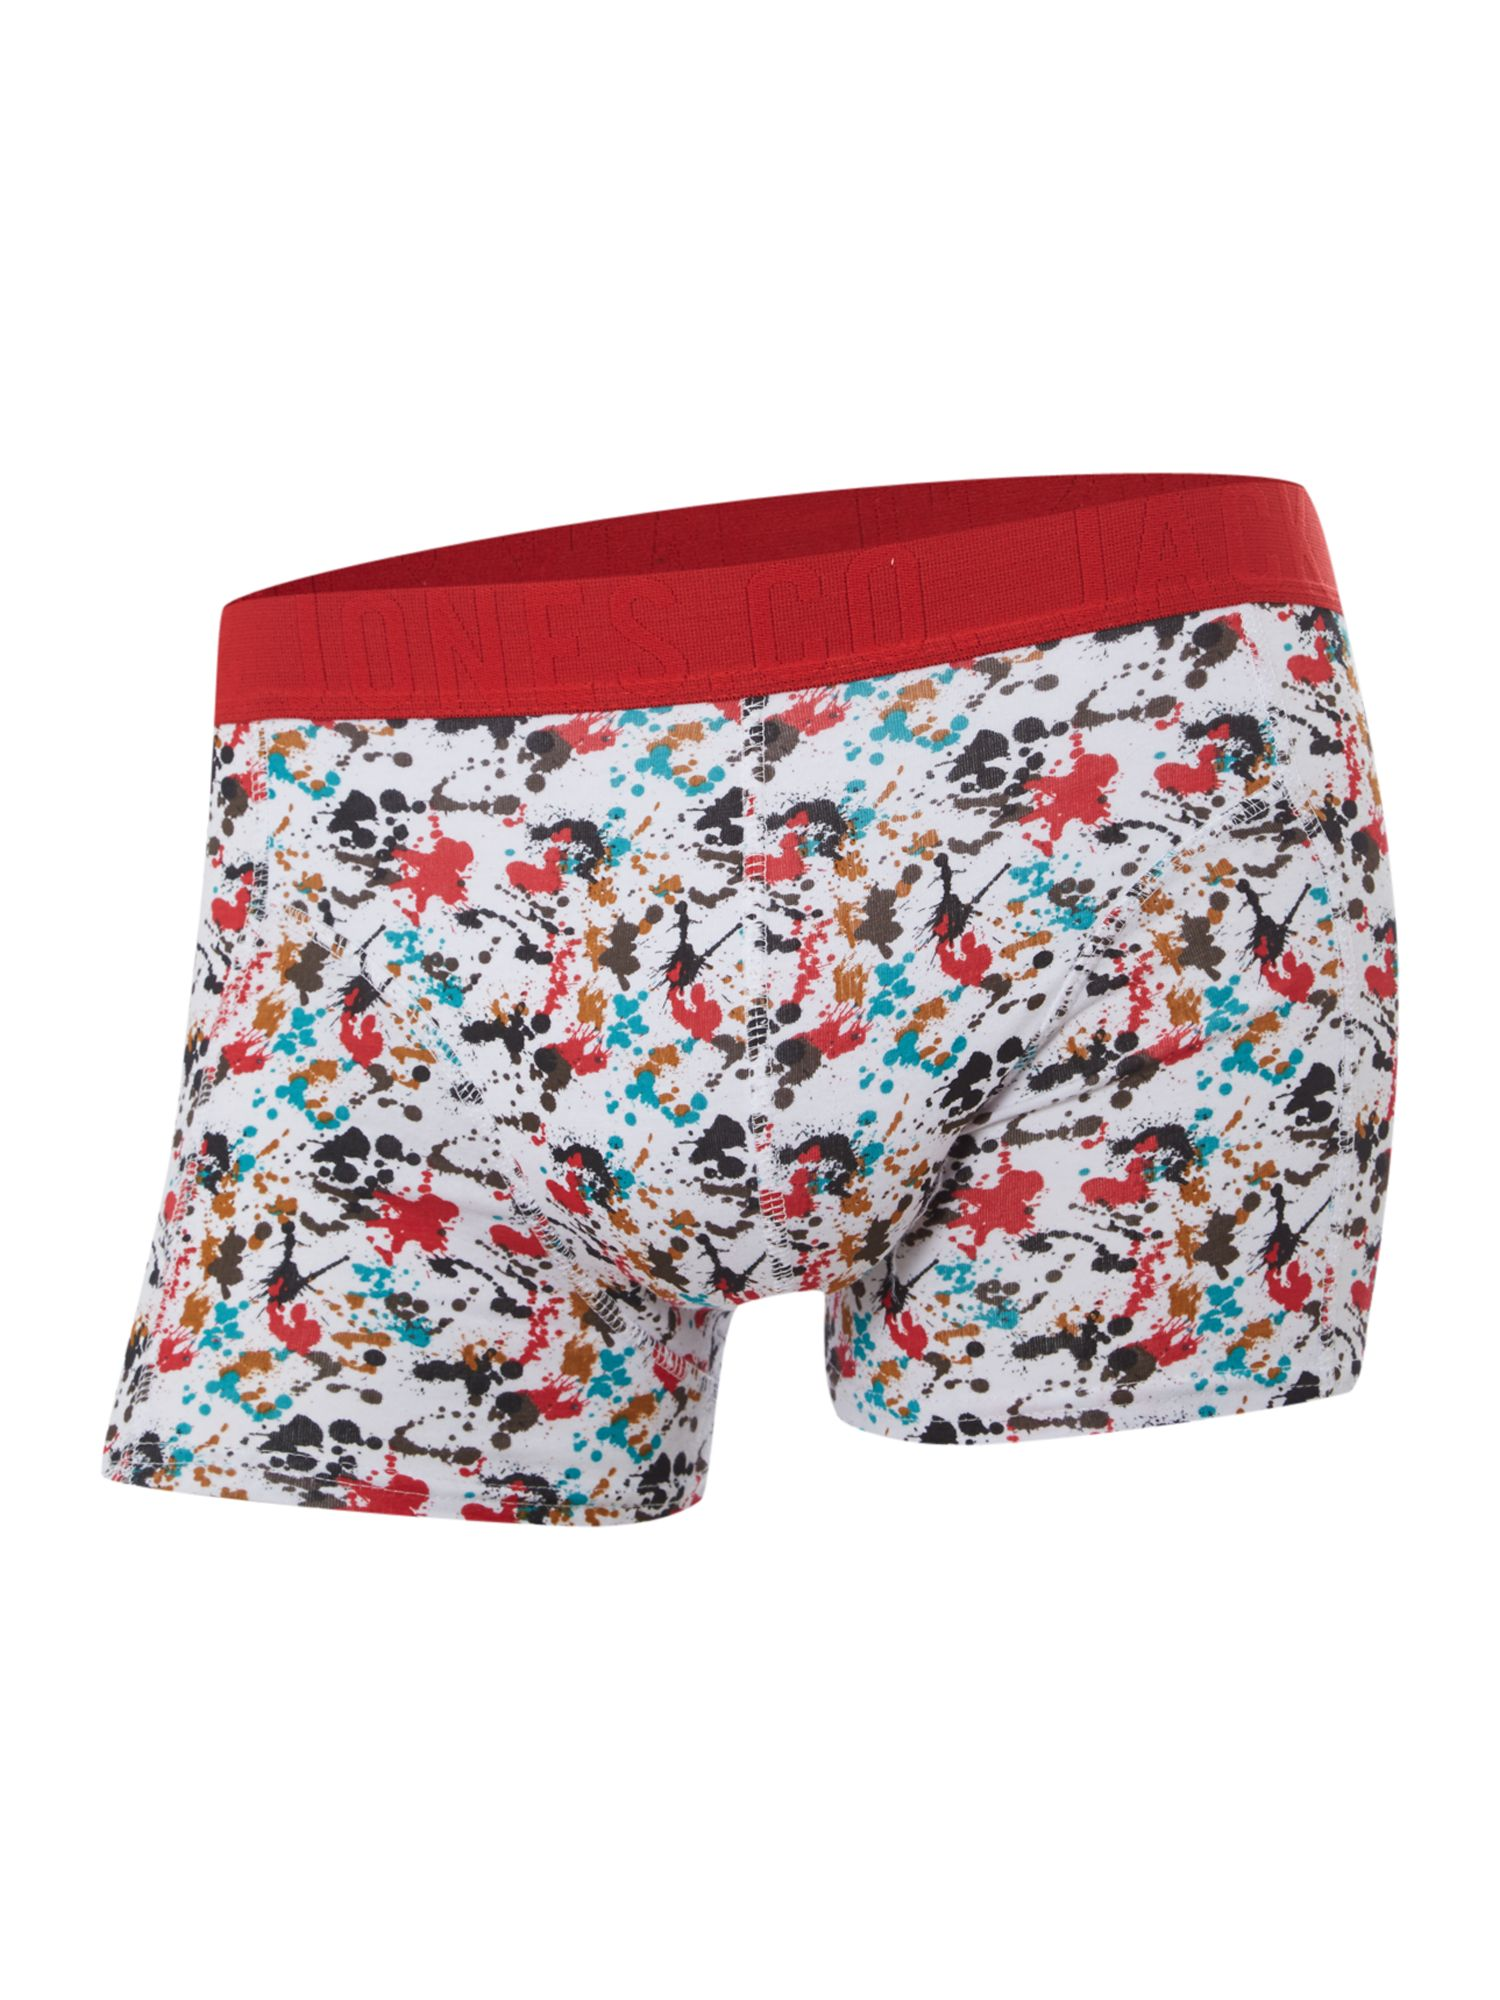 4 pack splatter print and plain trunks